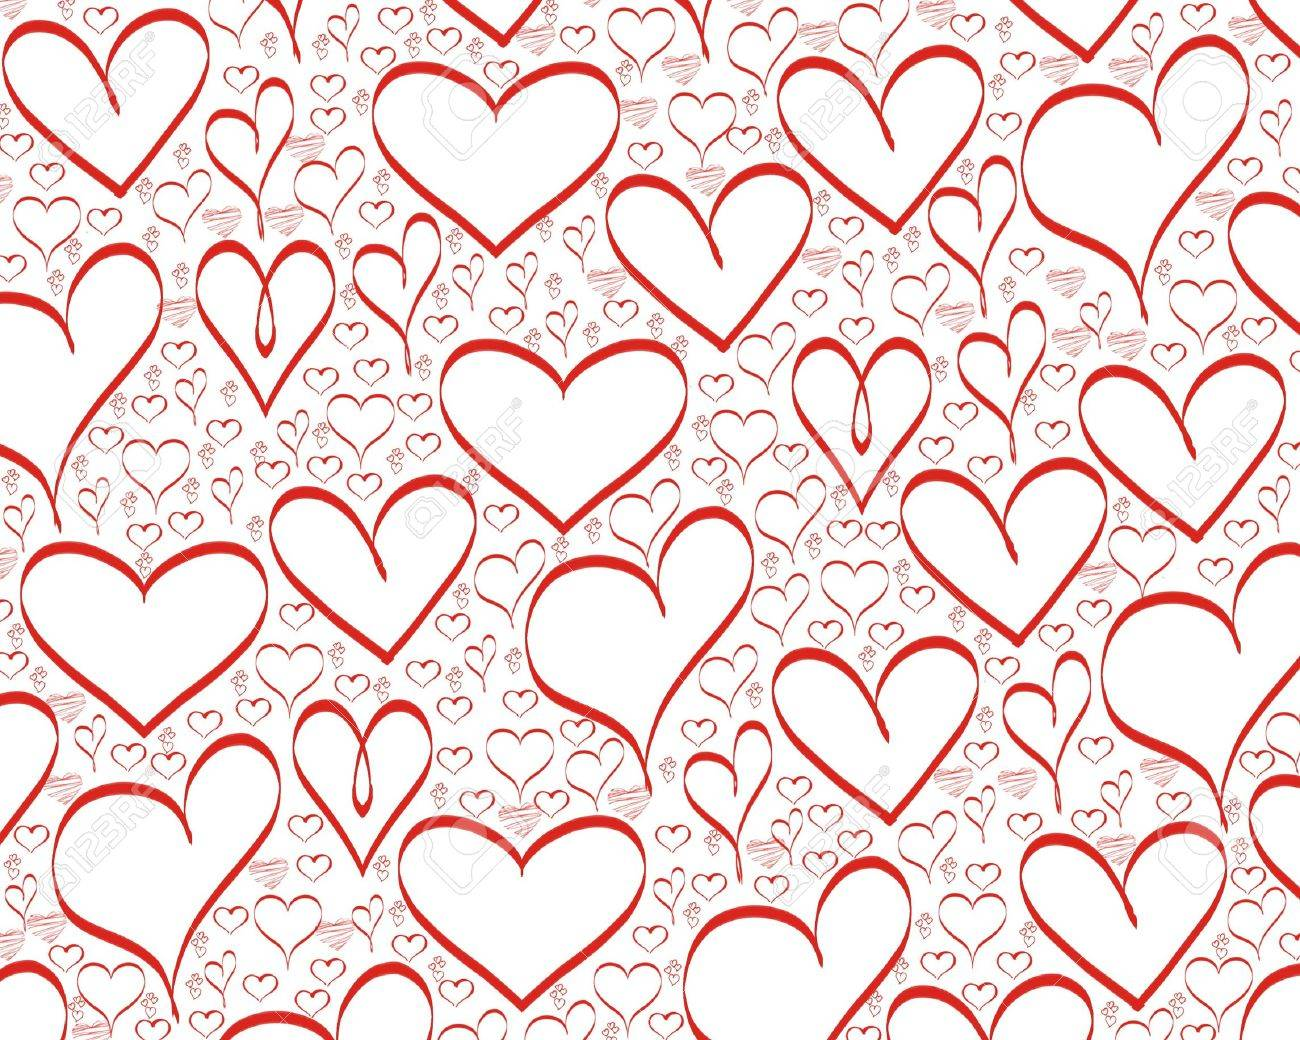 Red Hearts Background For Valentines Day Stock Photo Picture And